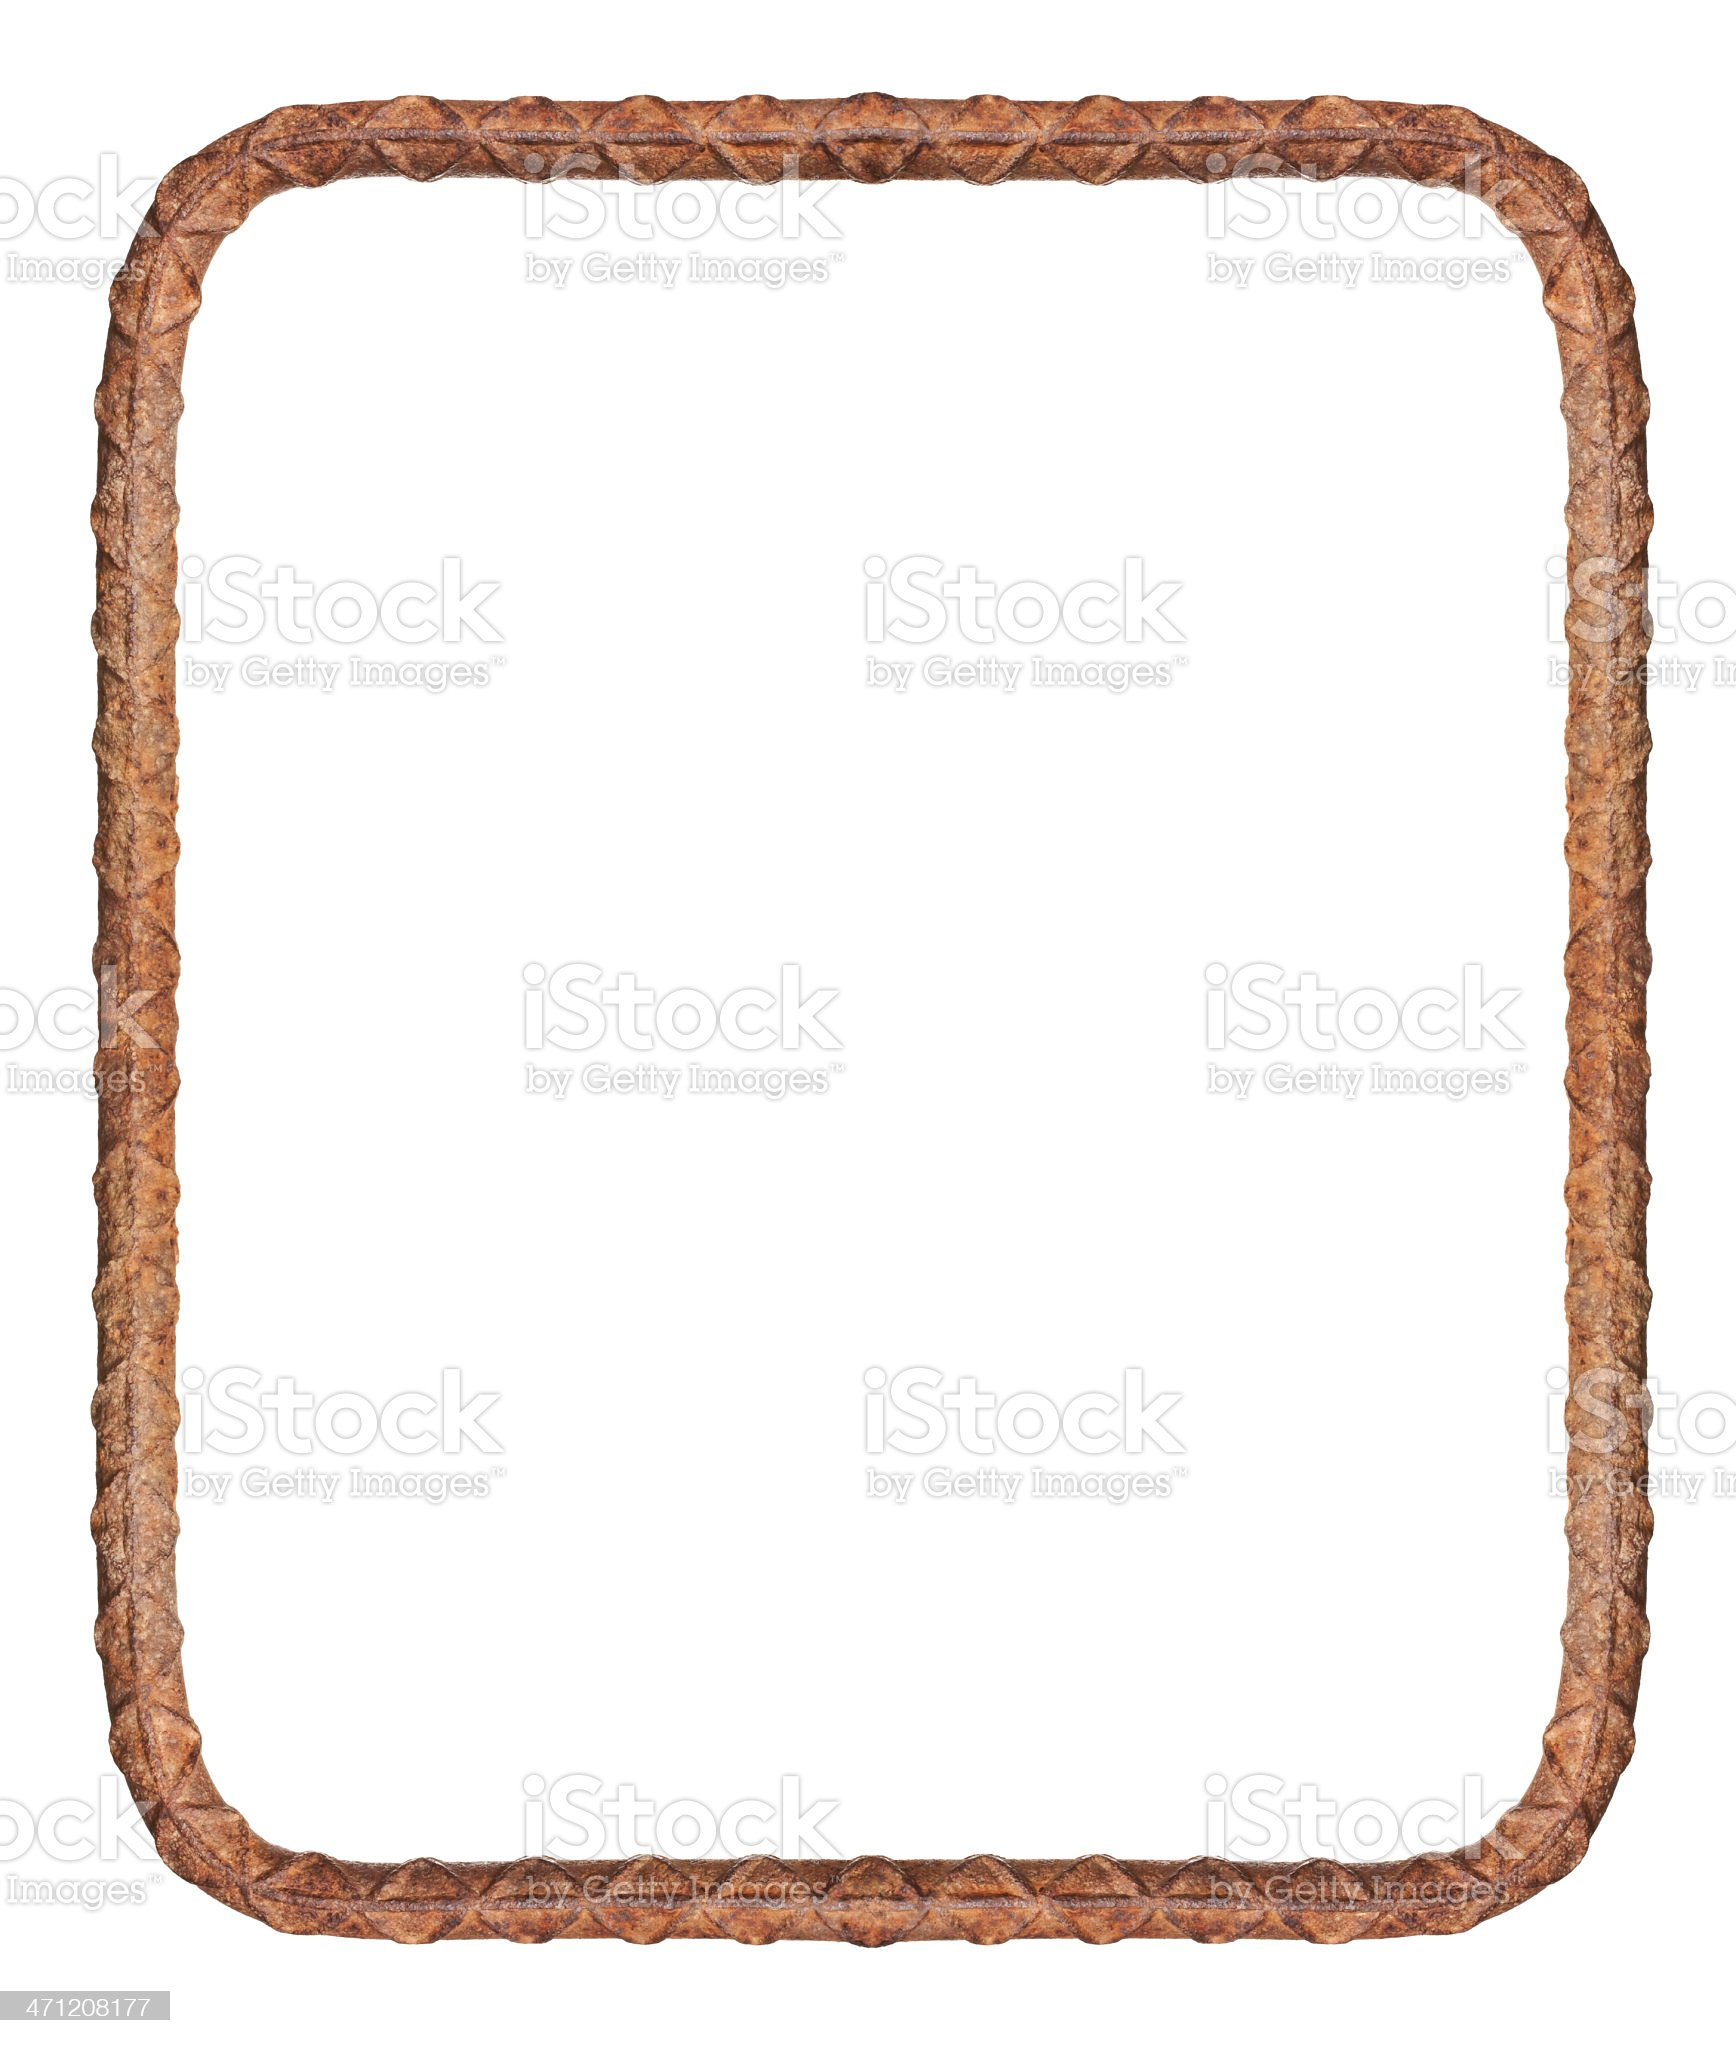 Grungy Rusted Frame Made of Rebar royalty-free stock photo